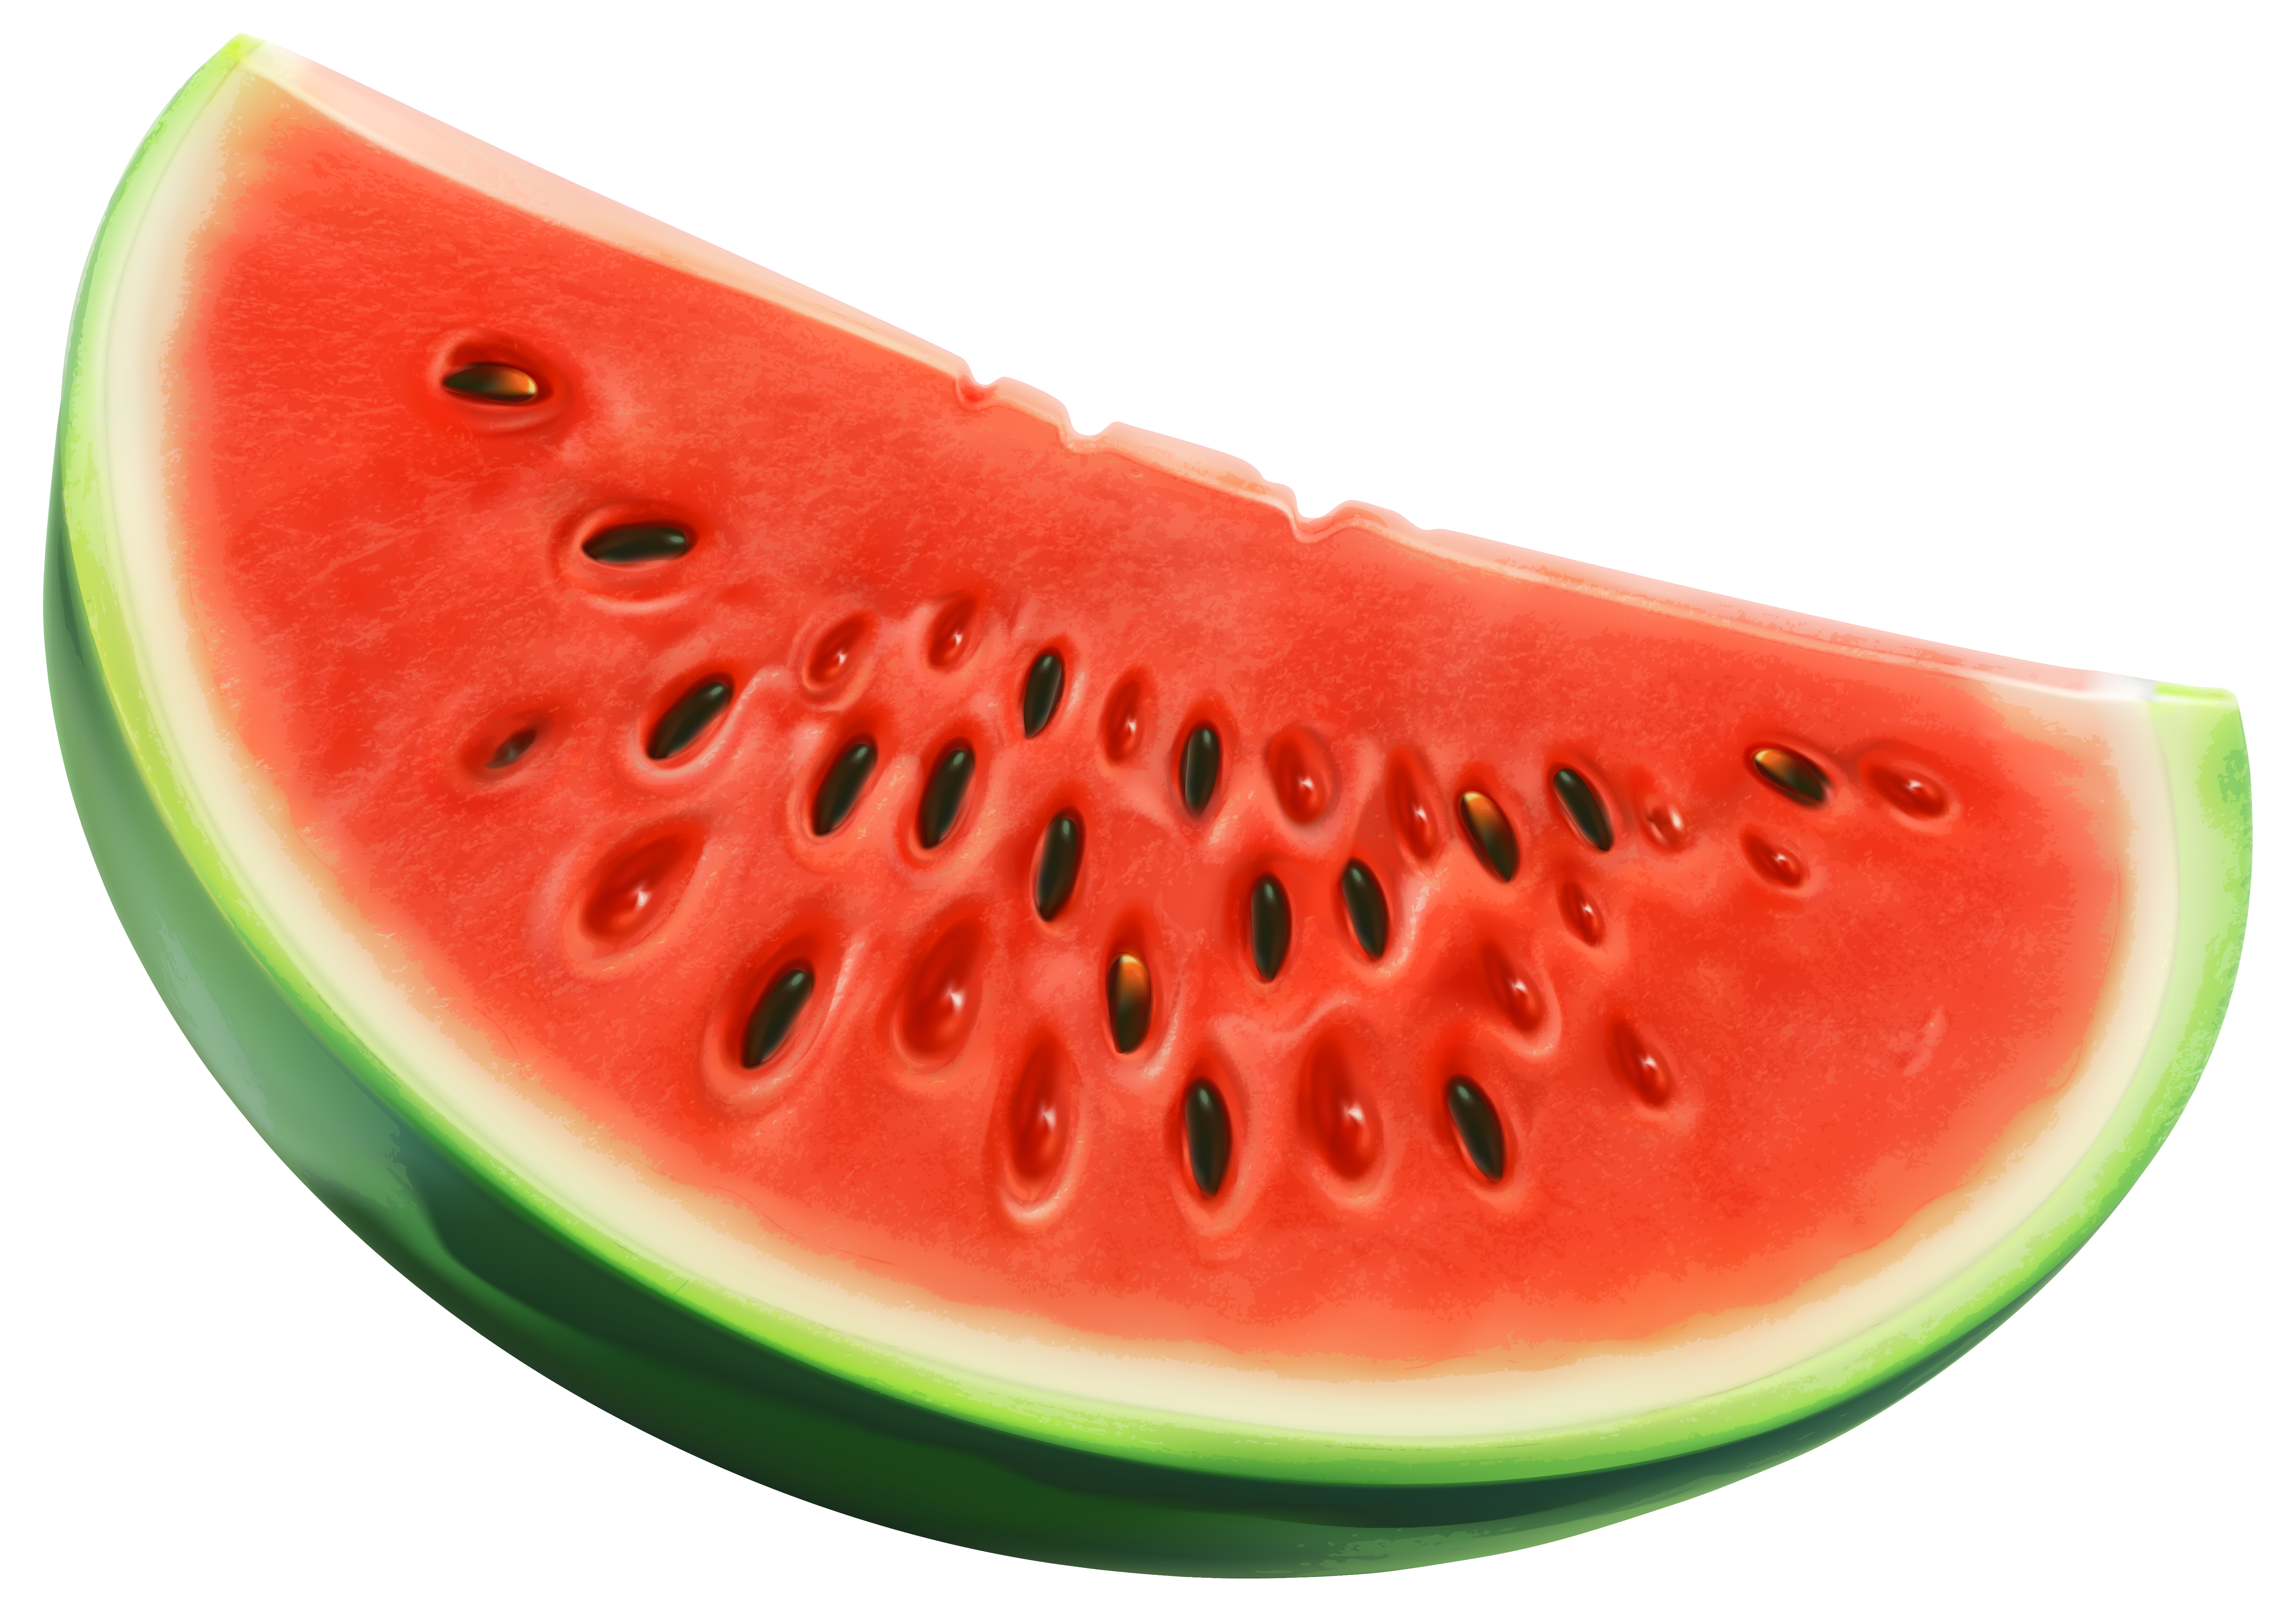 Piece of png image. Watermelon clipart transparent background